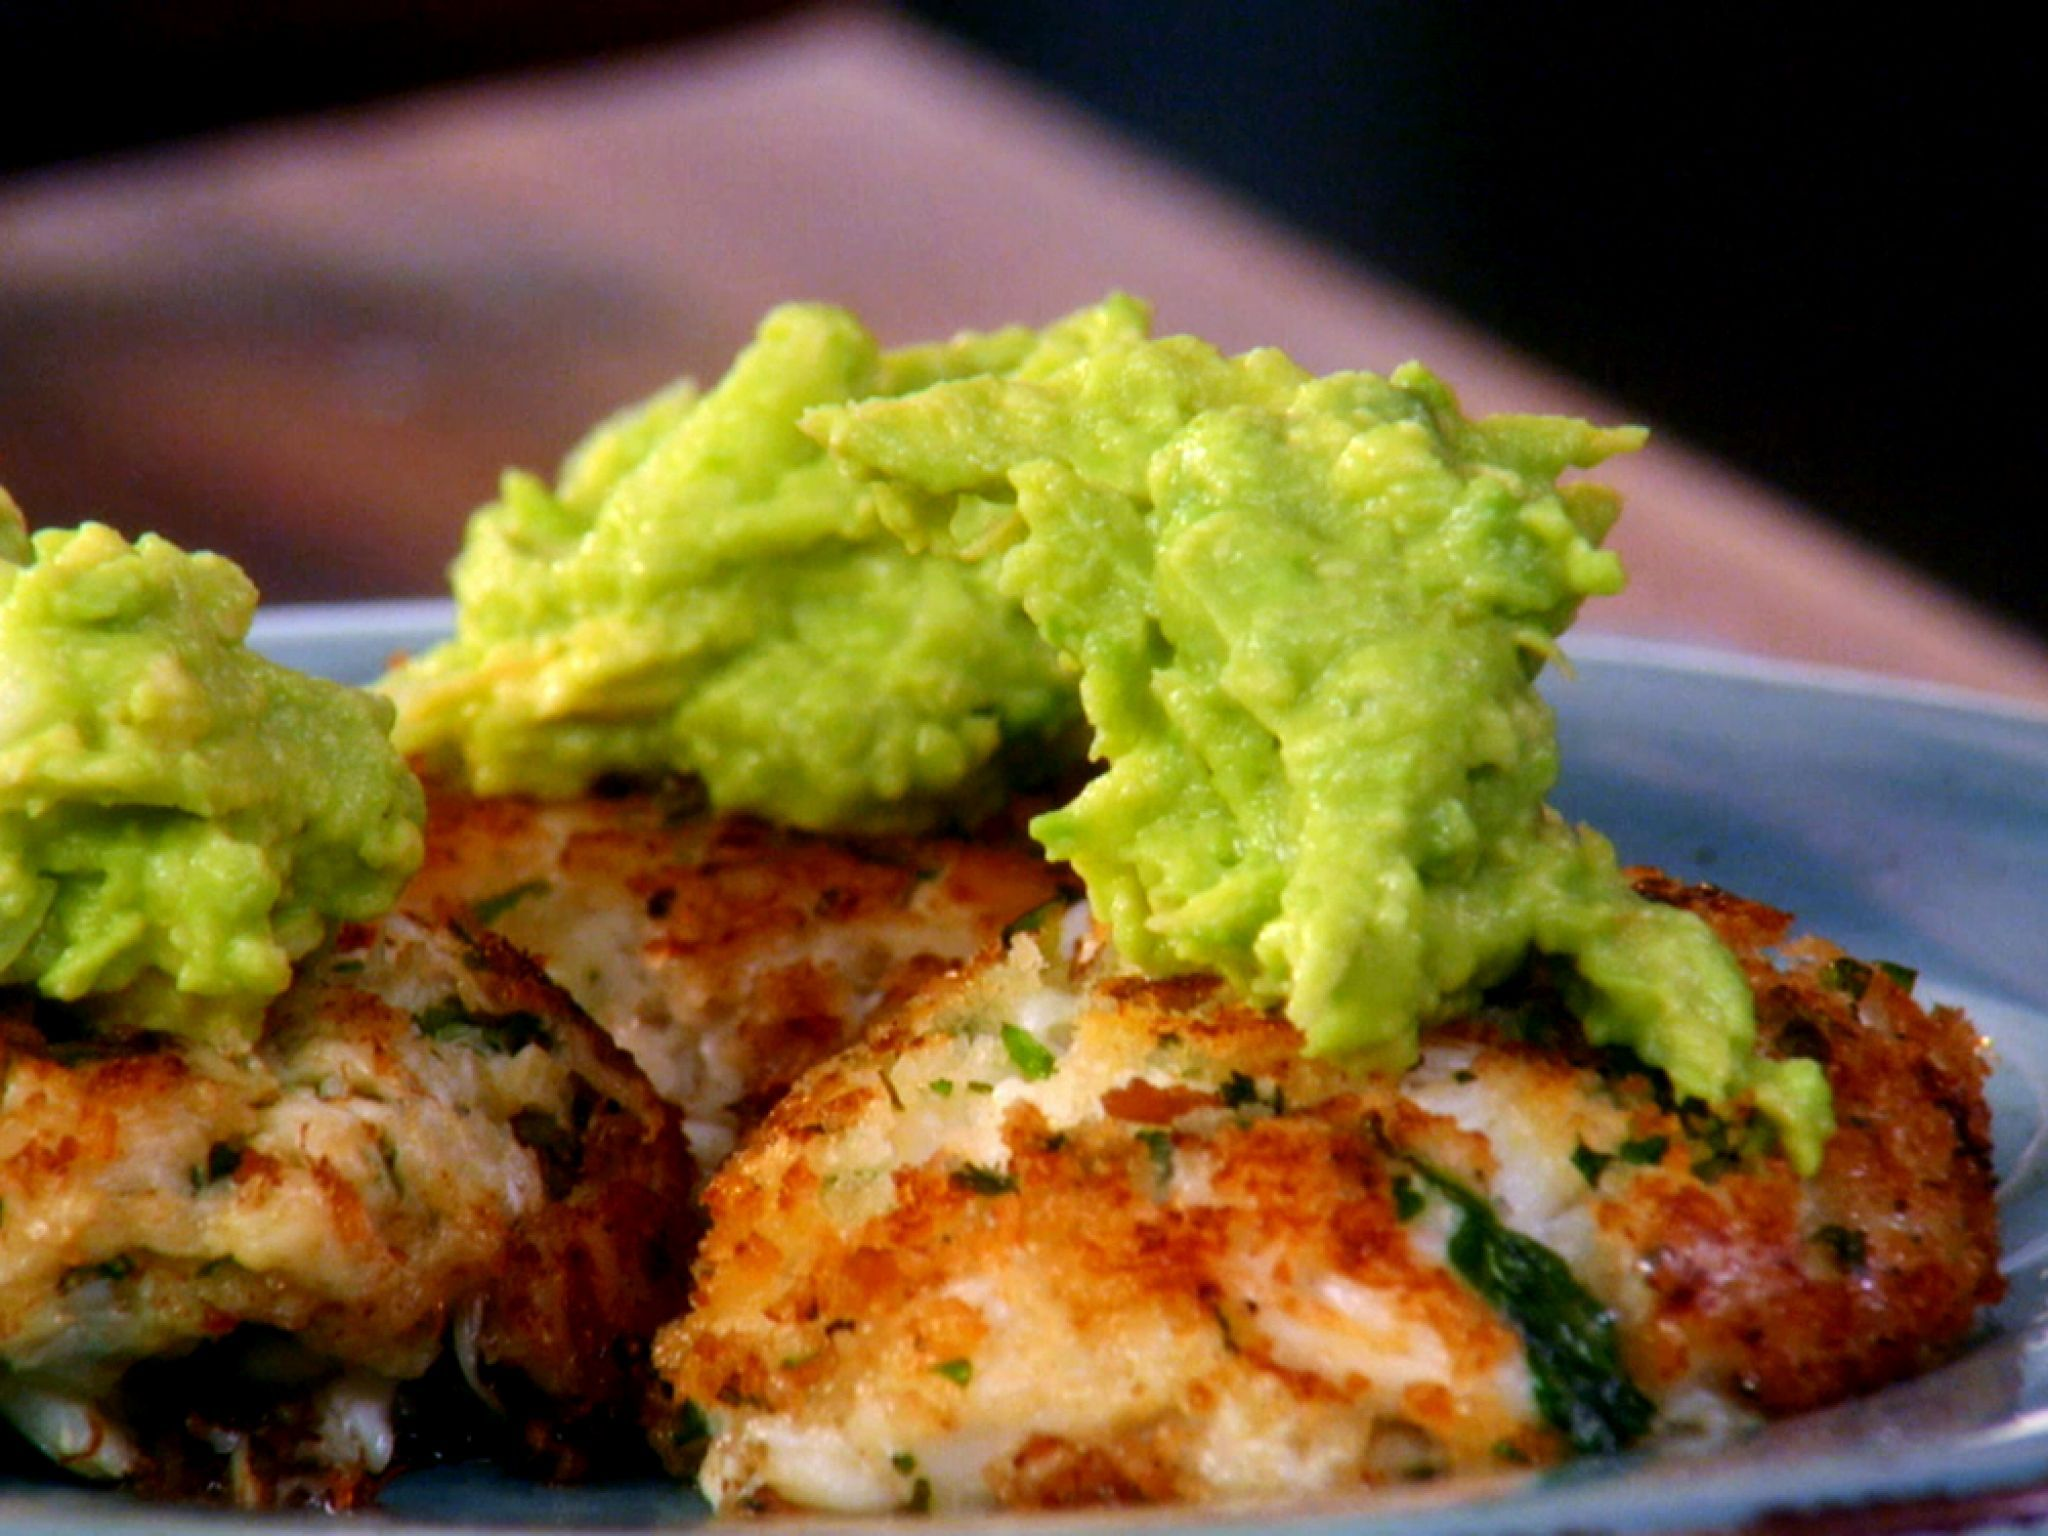 Spicy crab cakes topped with guacamole recipe guacamole recipe spicy crab cakes topped with guacamole recipe guacamole recipe cake and recipes forumfinder Image collections